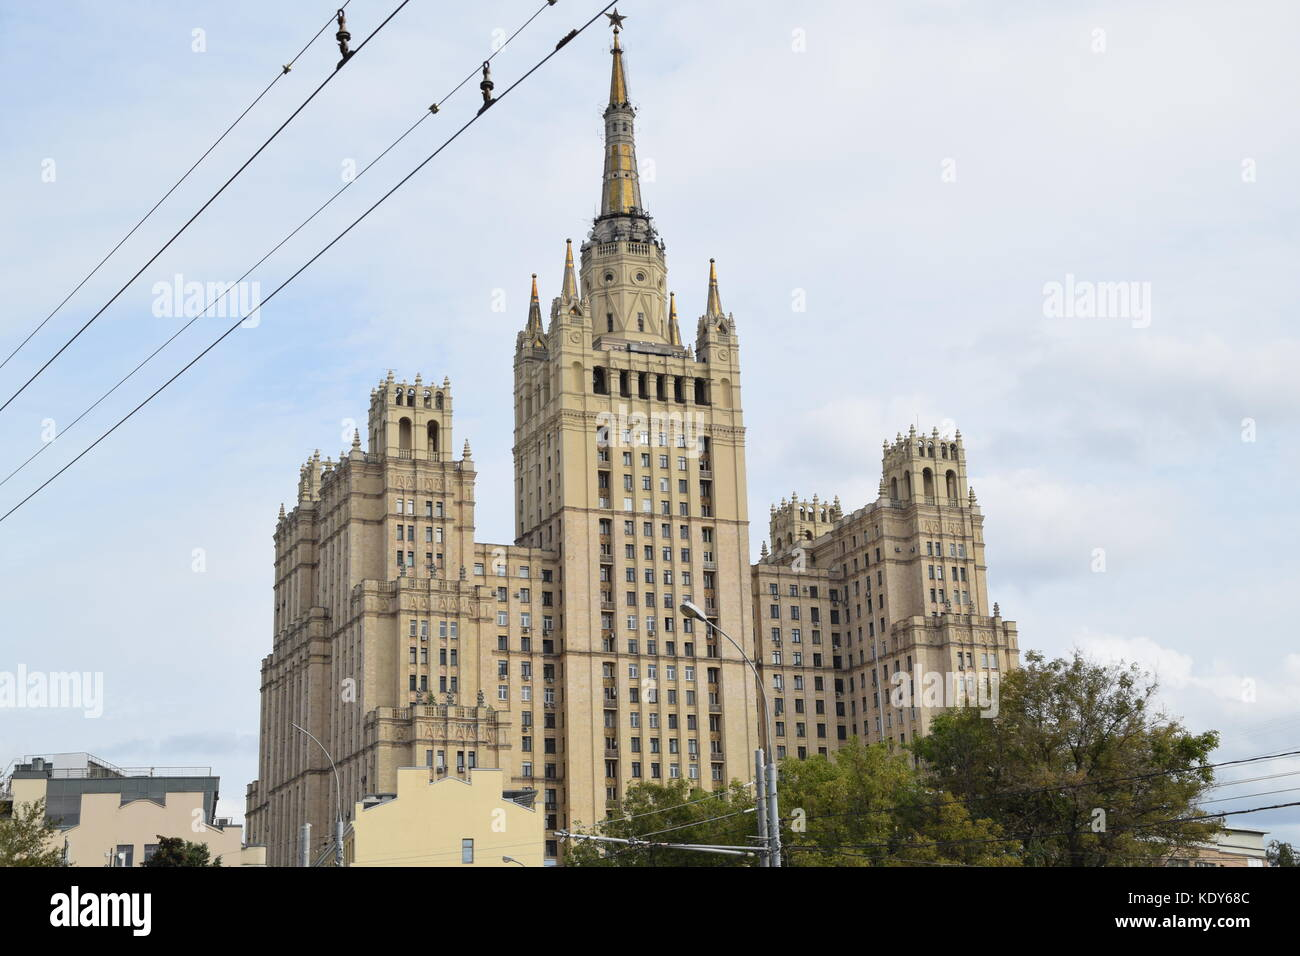 Kudrinskaya Square Building is one of seven Stalinist skyscrapers, designed by Mikhail Posokhin and Ashot Mndoyants. - Stock Image